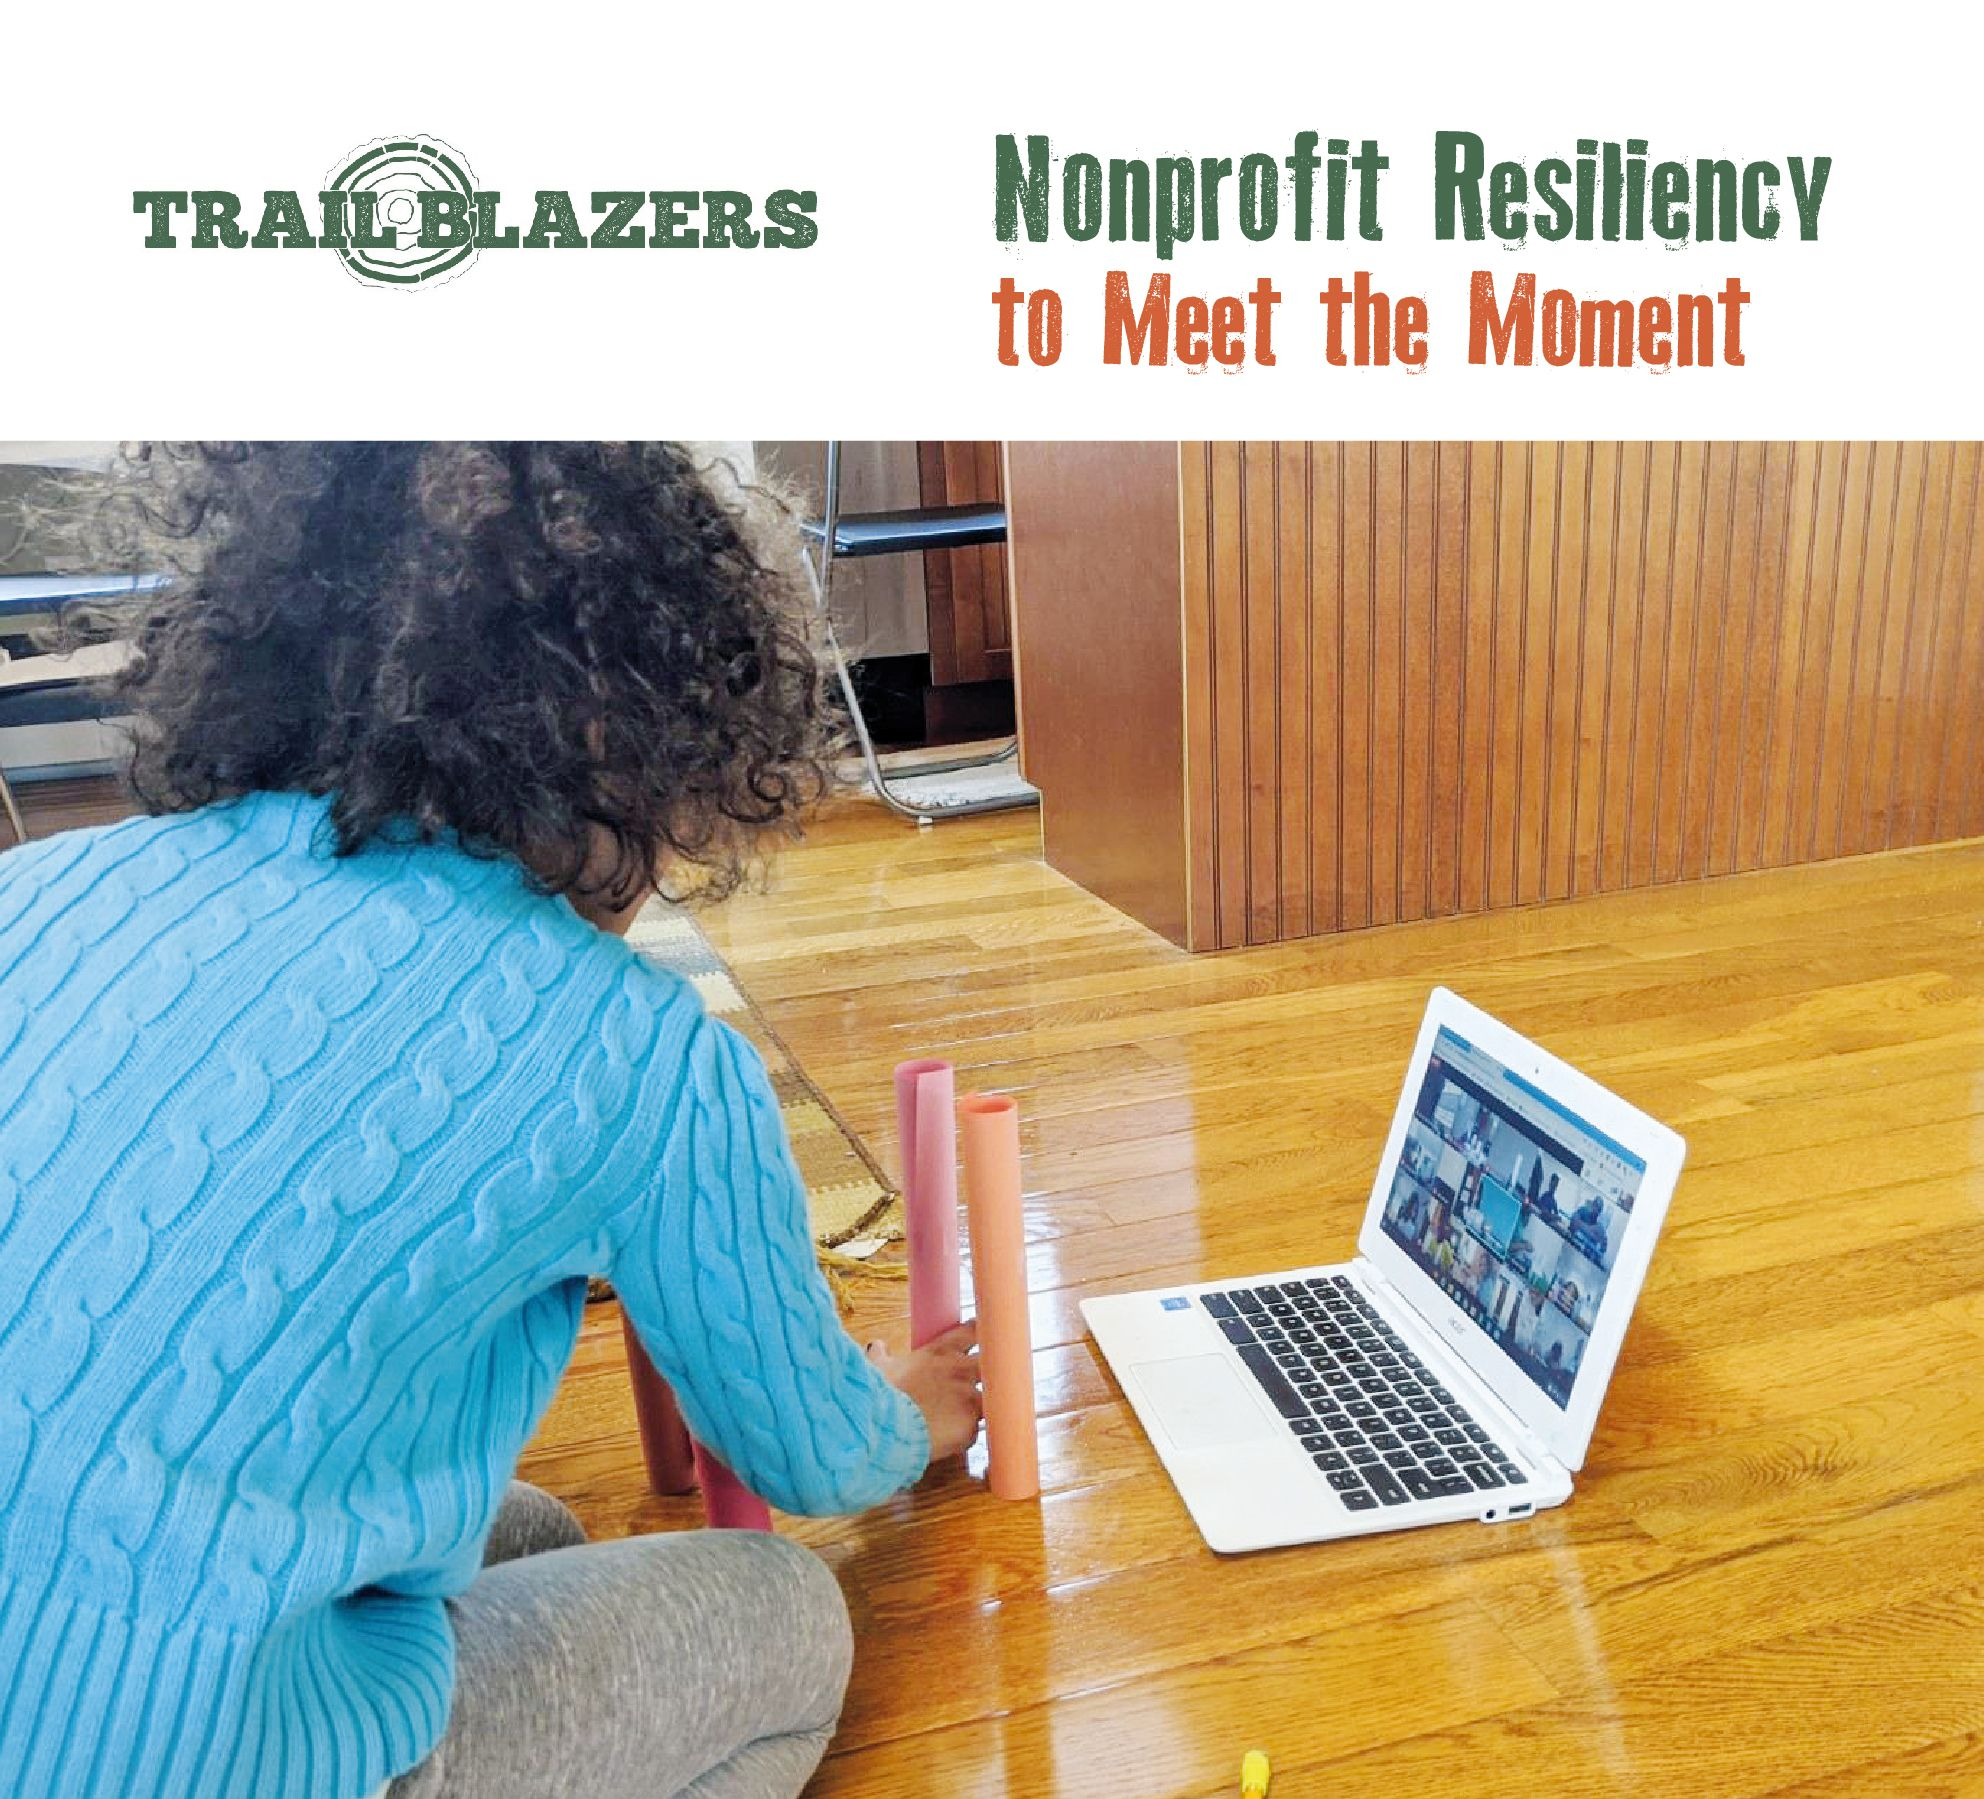 Nonprofit Resiliency to Meet the Moment - Trail Blazers